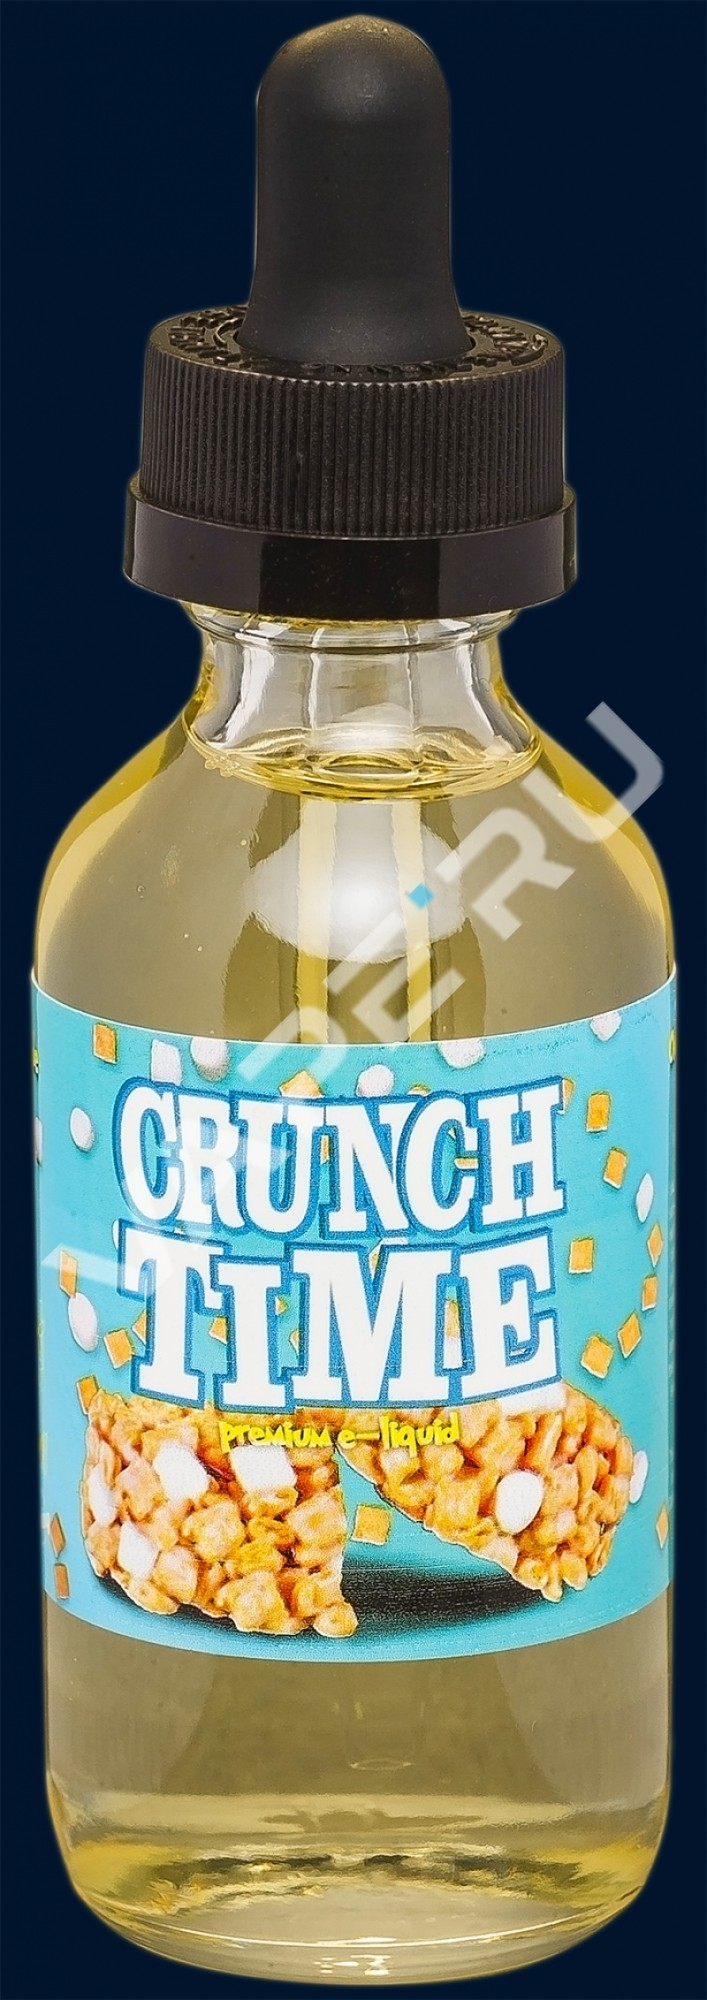 California Vaping company, crunch time